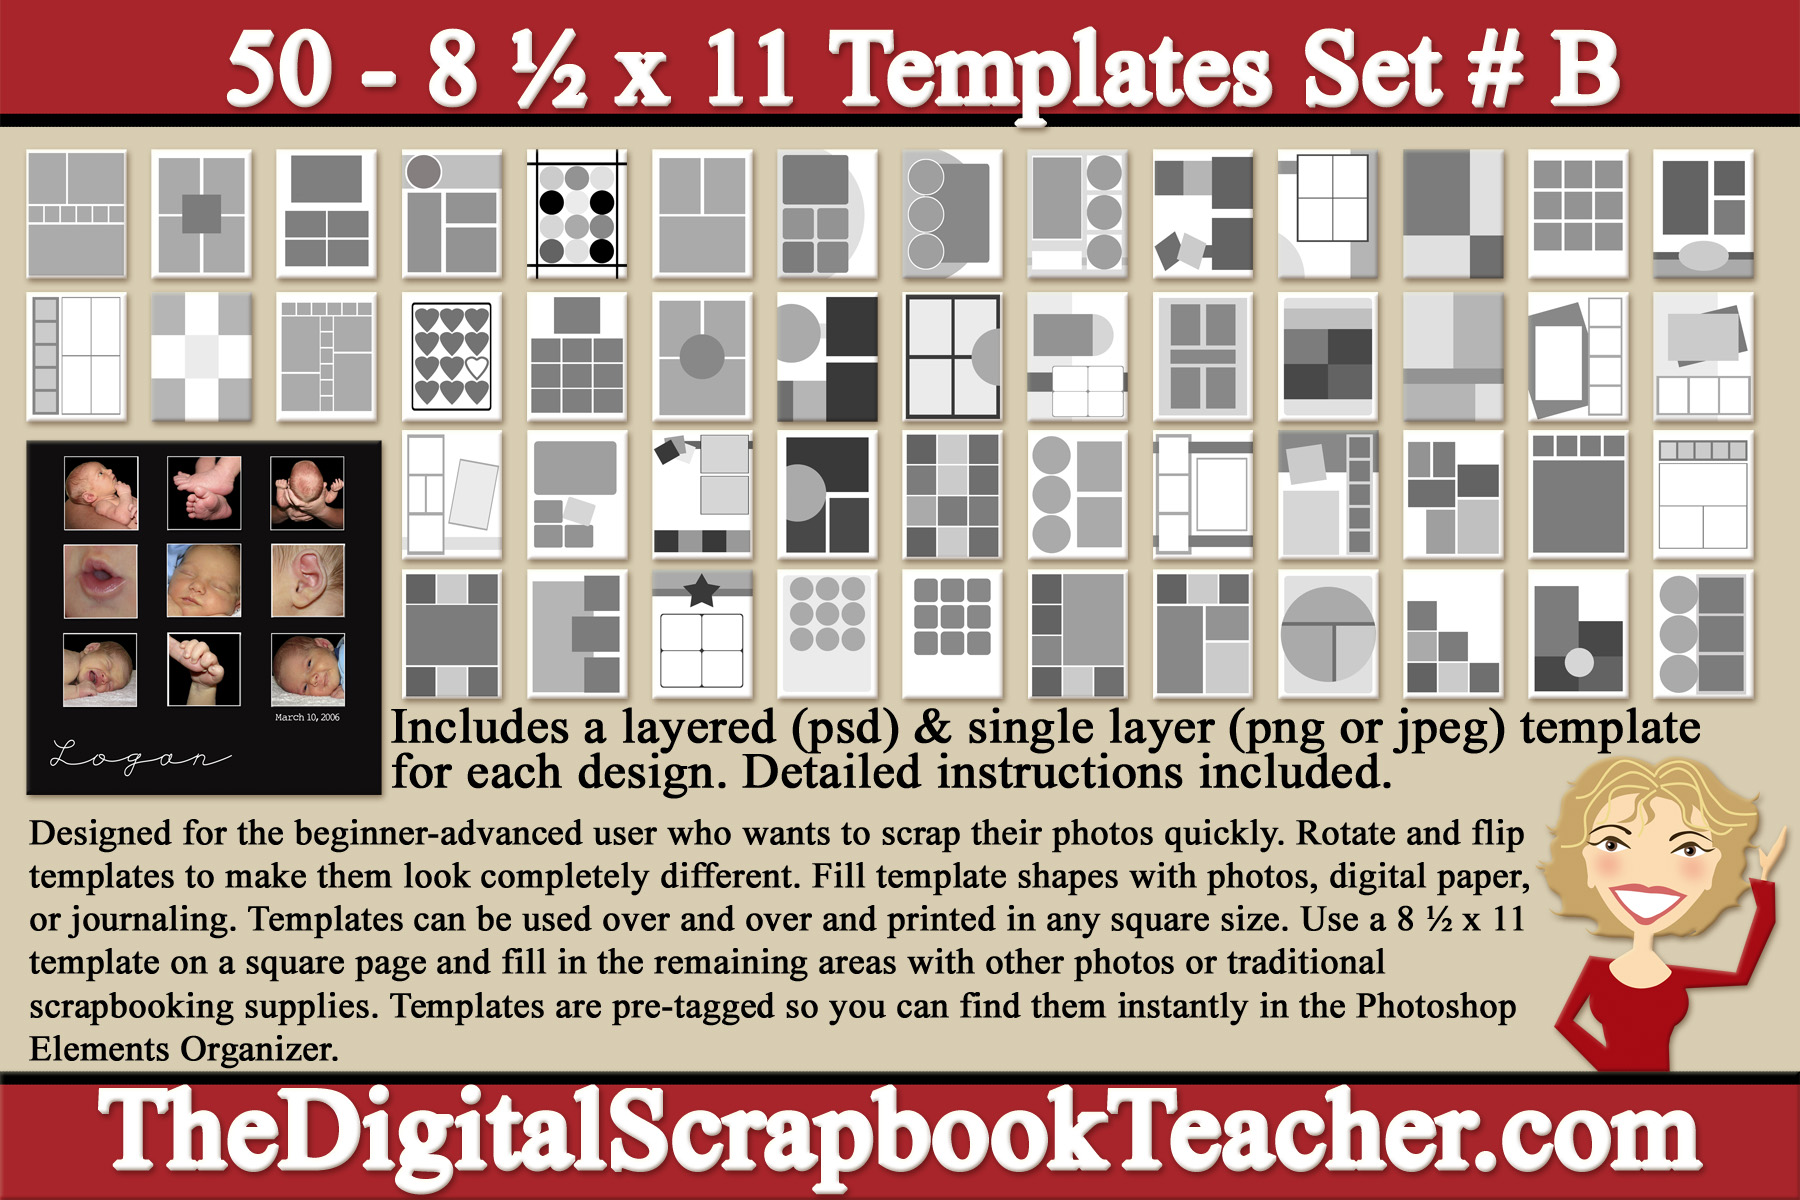 8 X 11 Inch Scrapbook Page Templates 50 Cd B The Digital Scrapbook Teacher